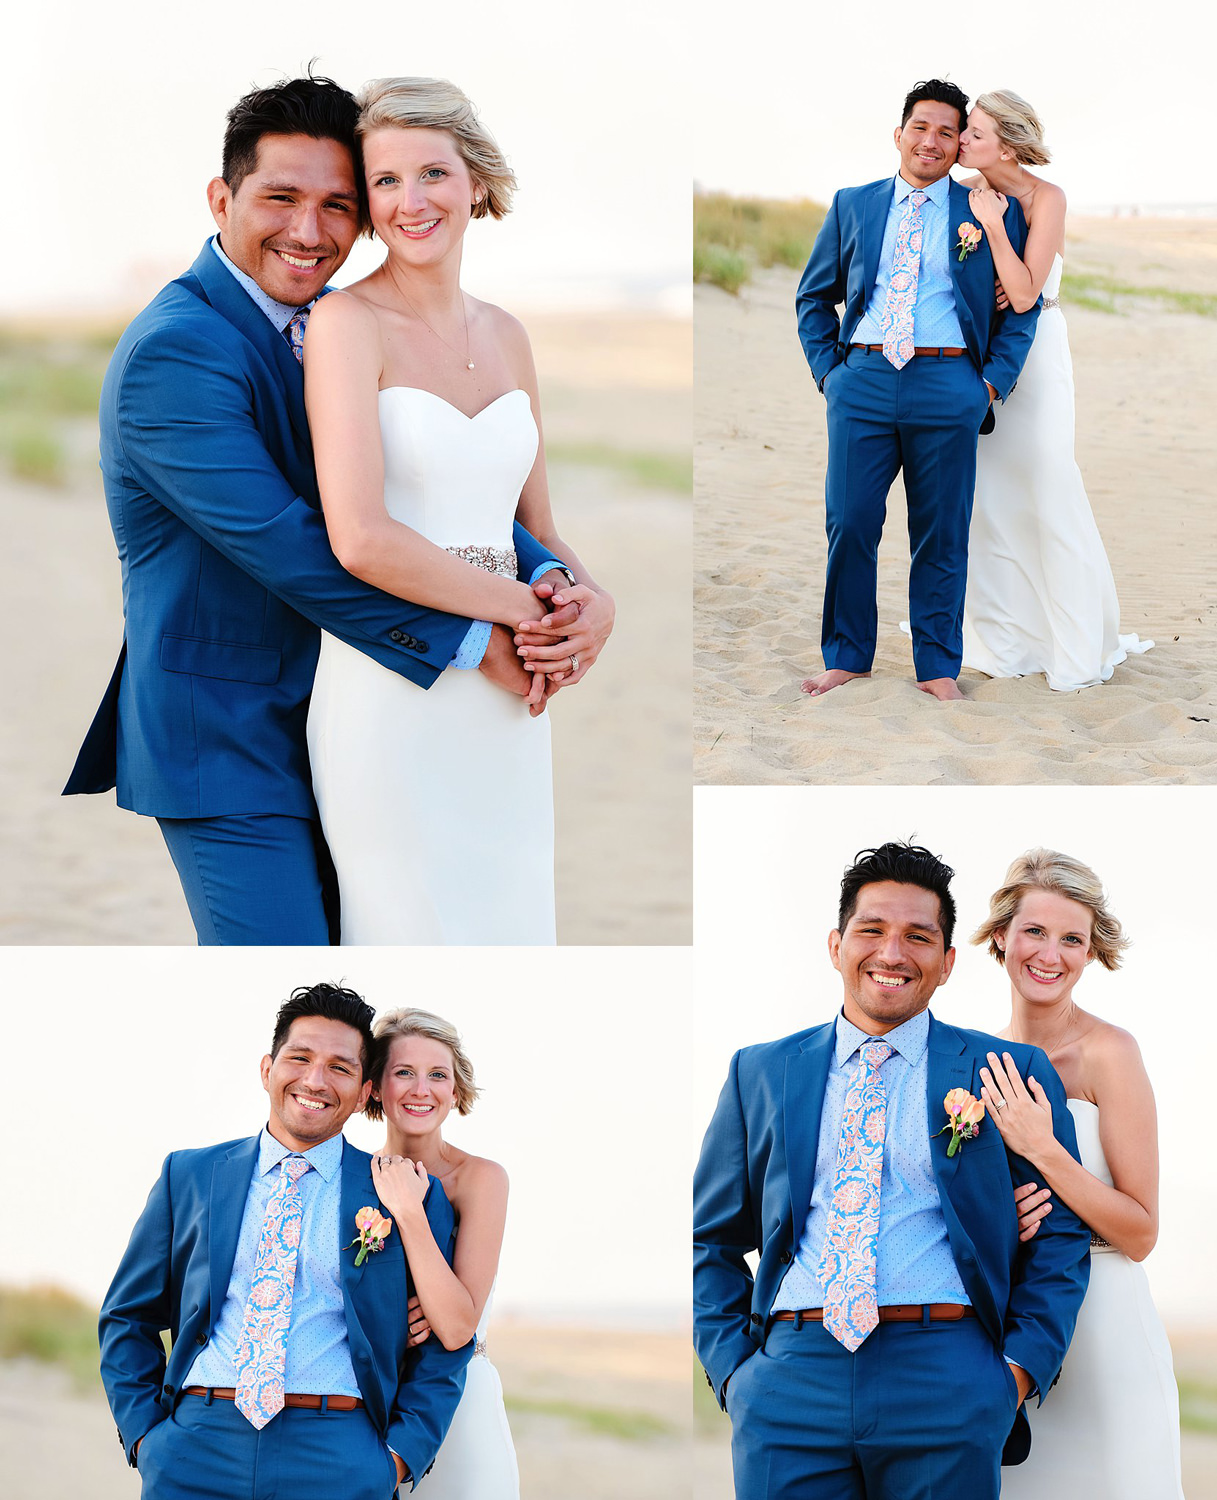 gorgeous-bride-and-groom-beach-portraits-sandbridge-va-beach-wedding-melissa-bliss-photography.jpg